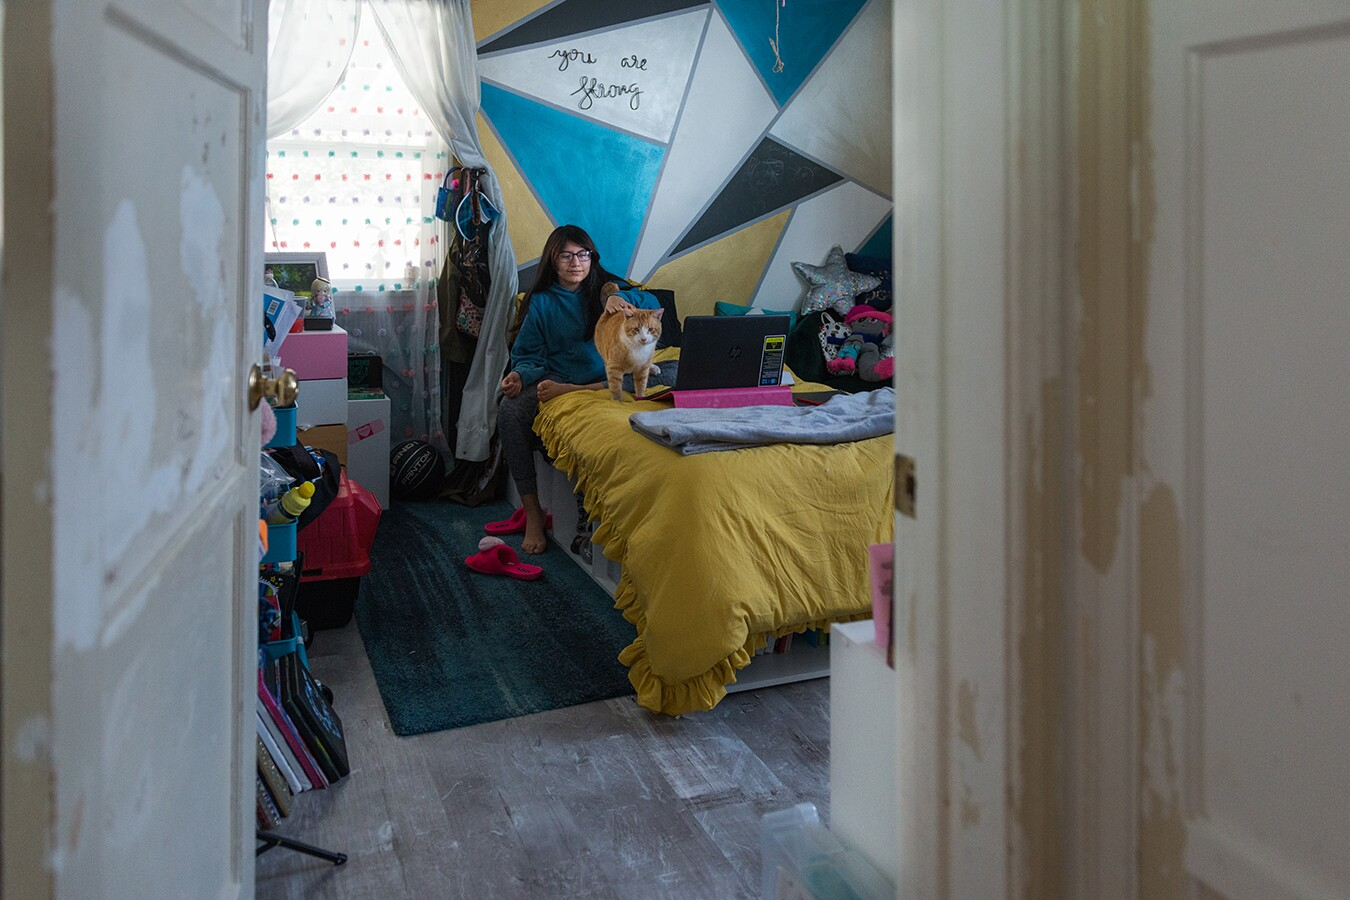 Rhianna plays with her cat in her bedroom. She's sitting on a mustard yellow blanket with a laptop on her bed. Behind her is a geometric painted wall with triangles painted in various blues and yellow.